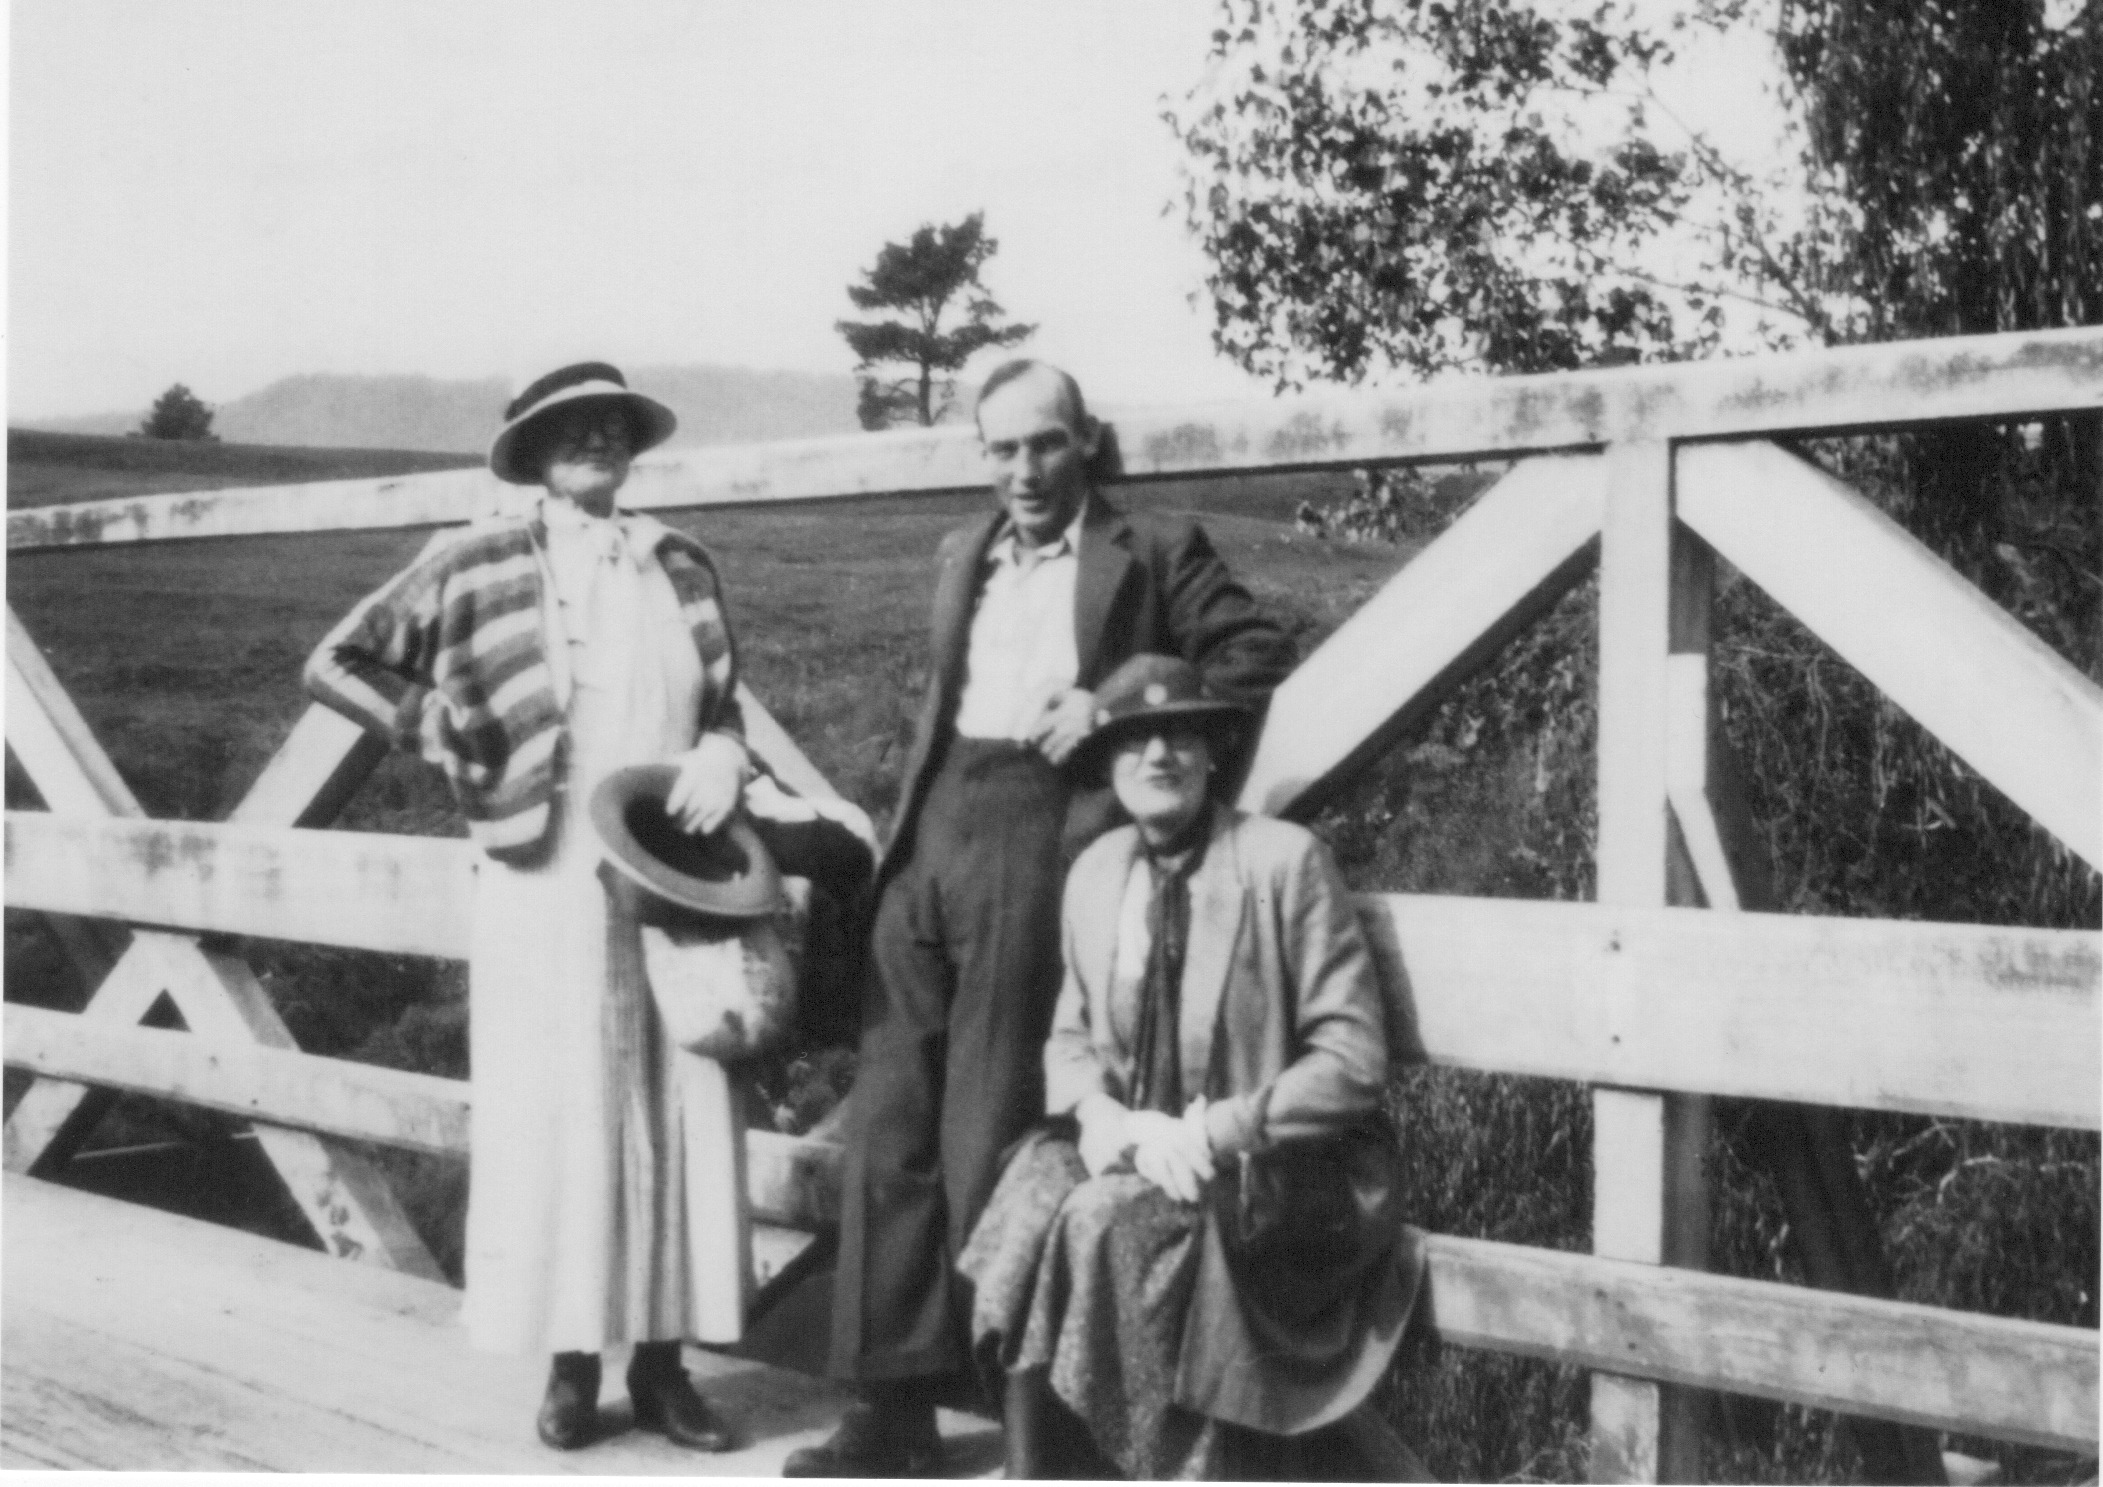 Fannie Munckton, Norman and Edith Miller, NZ, c1930 (family collection)